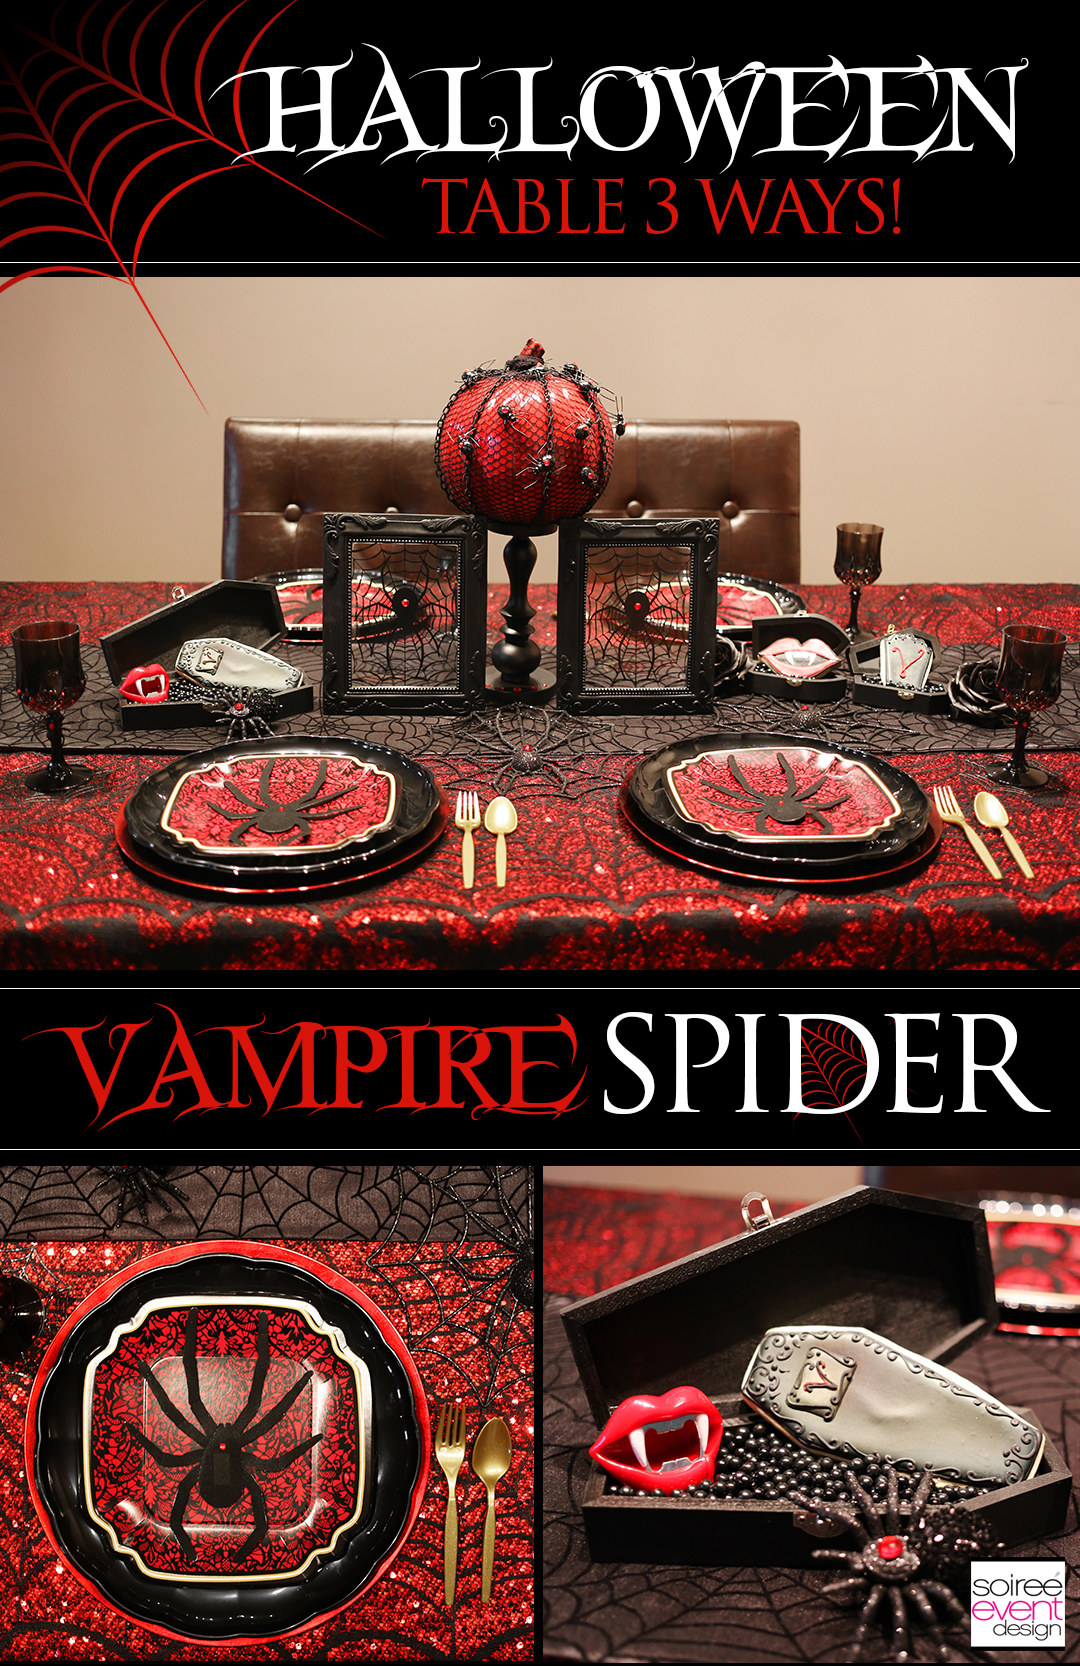 halloween-table-3-ways-black-widow-spider